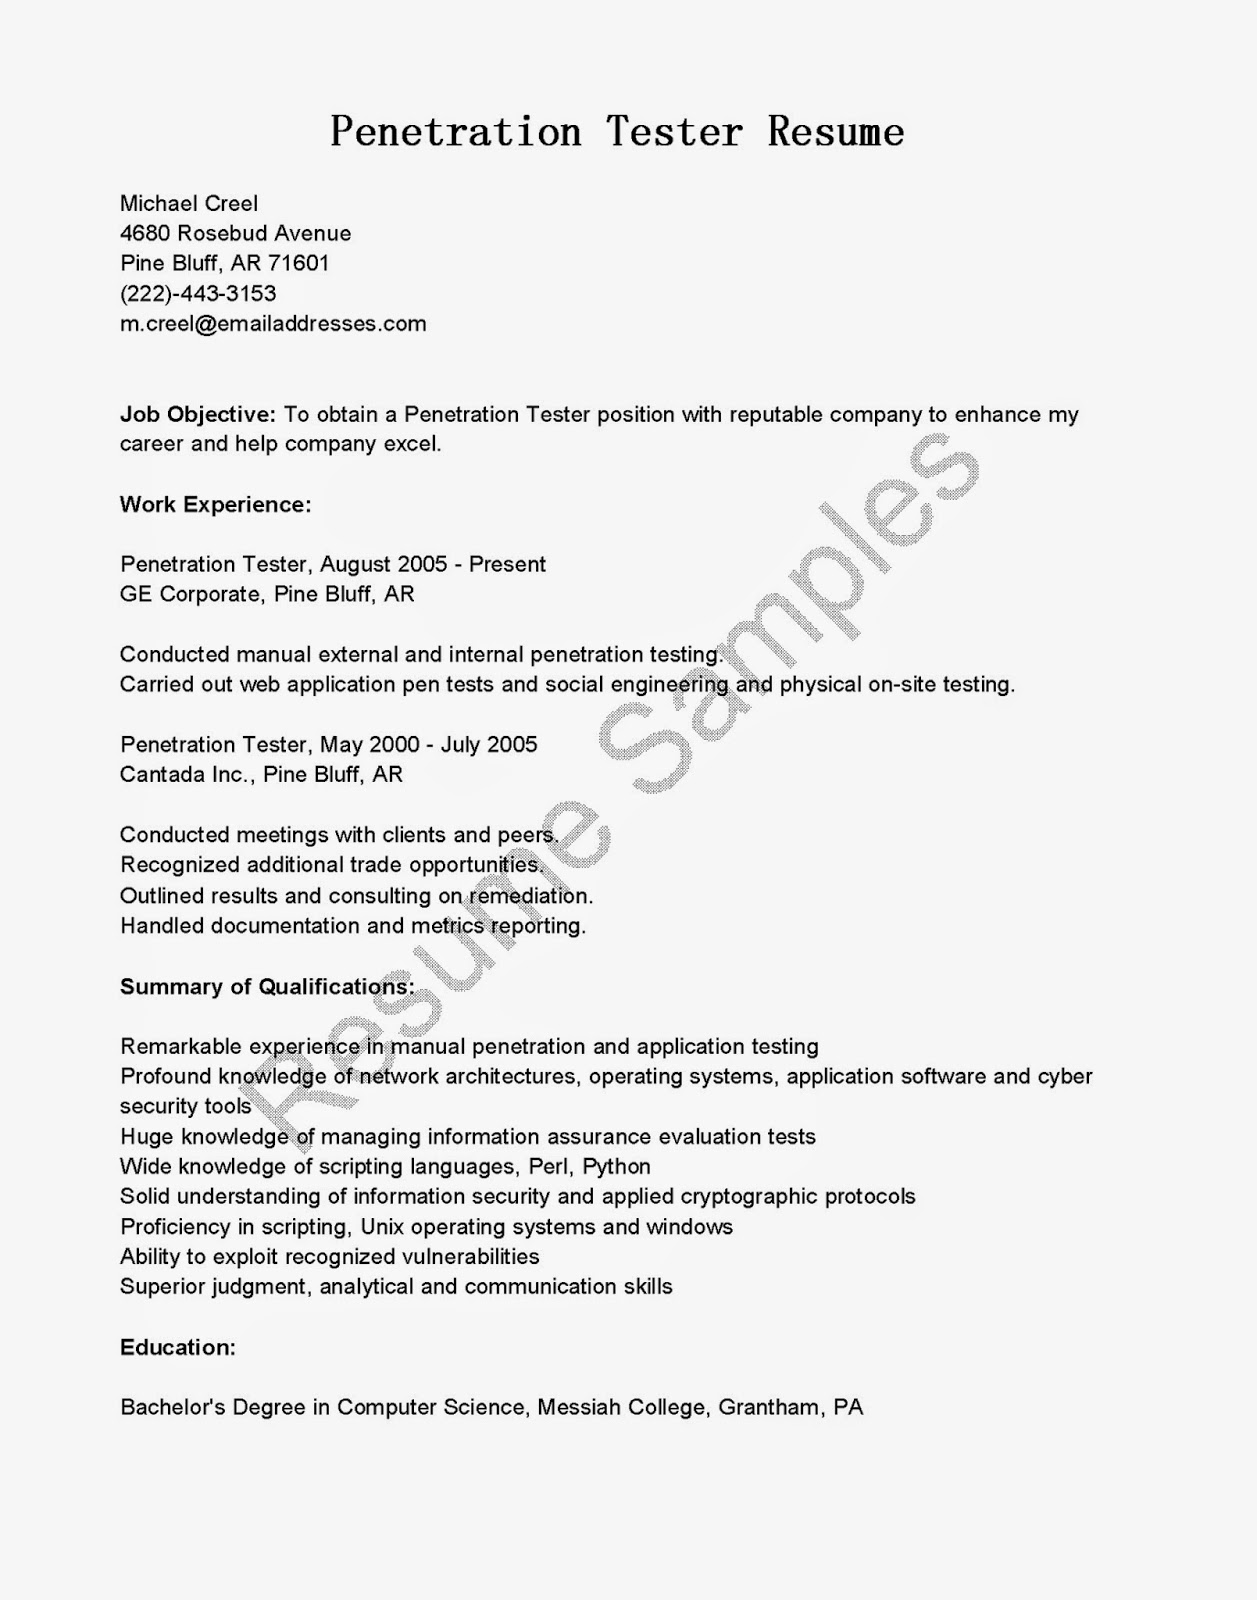 sample resume for computer science resume templates sample resume for computer science 3 computer science resume samples examples careerride resume samples penetration tester